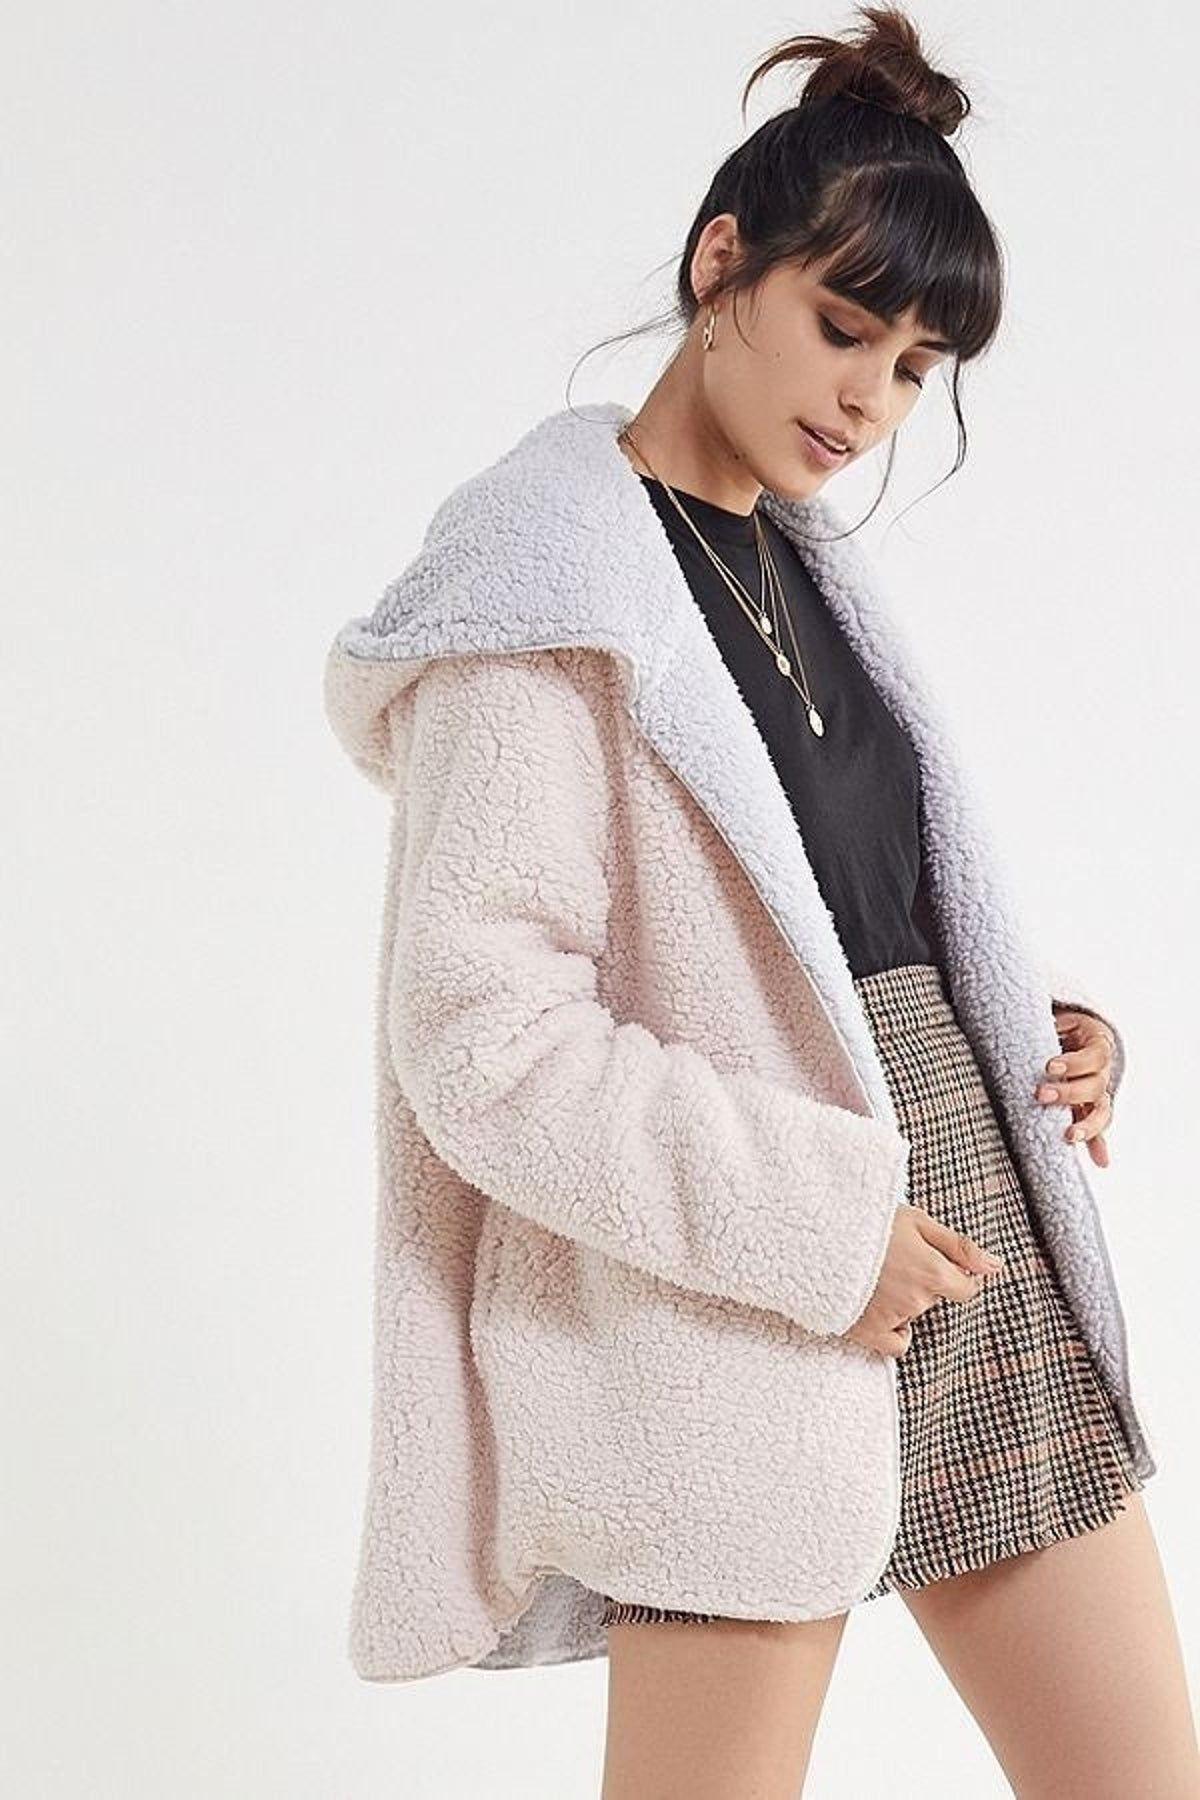 Urban Outfitters Teddy Jacket Clothes Urban Outfitters Urban Fashion [ 1800 x 1200 Pixel ]